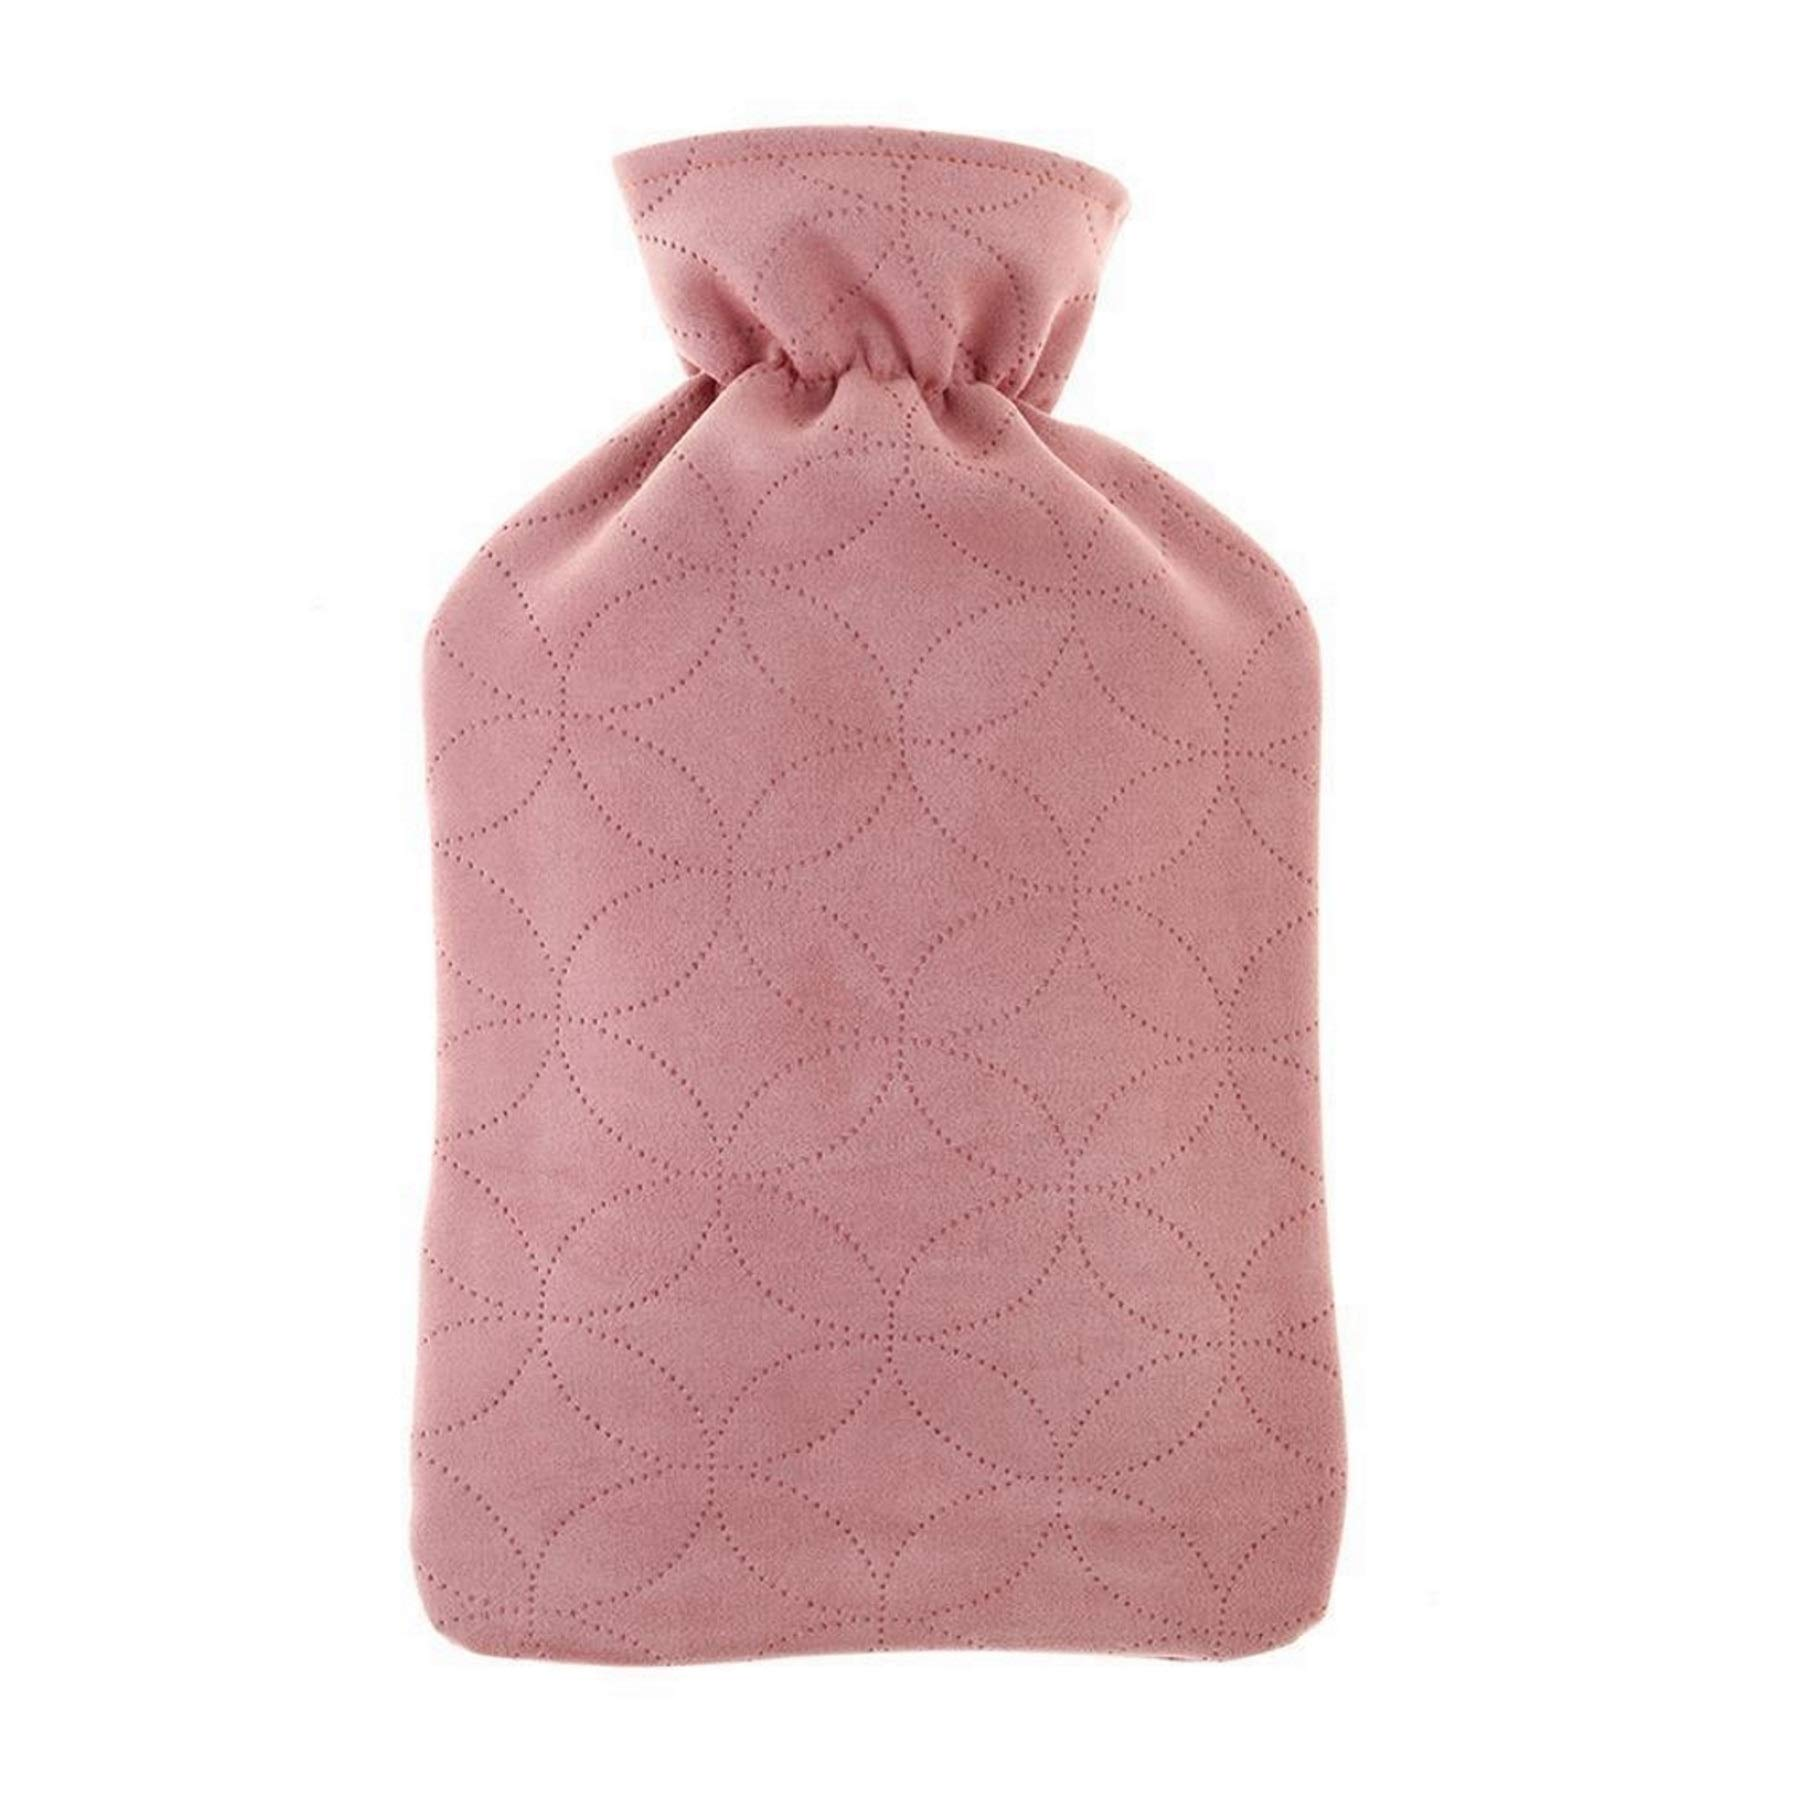 Aroma Home Essentials Comforting Hot Water Bottle - Rose by Aroma Home